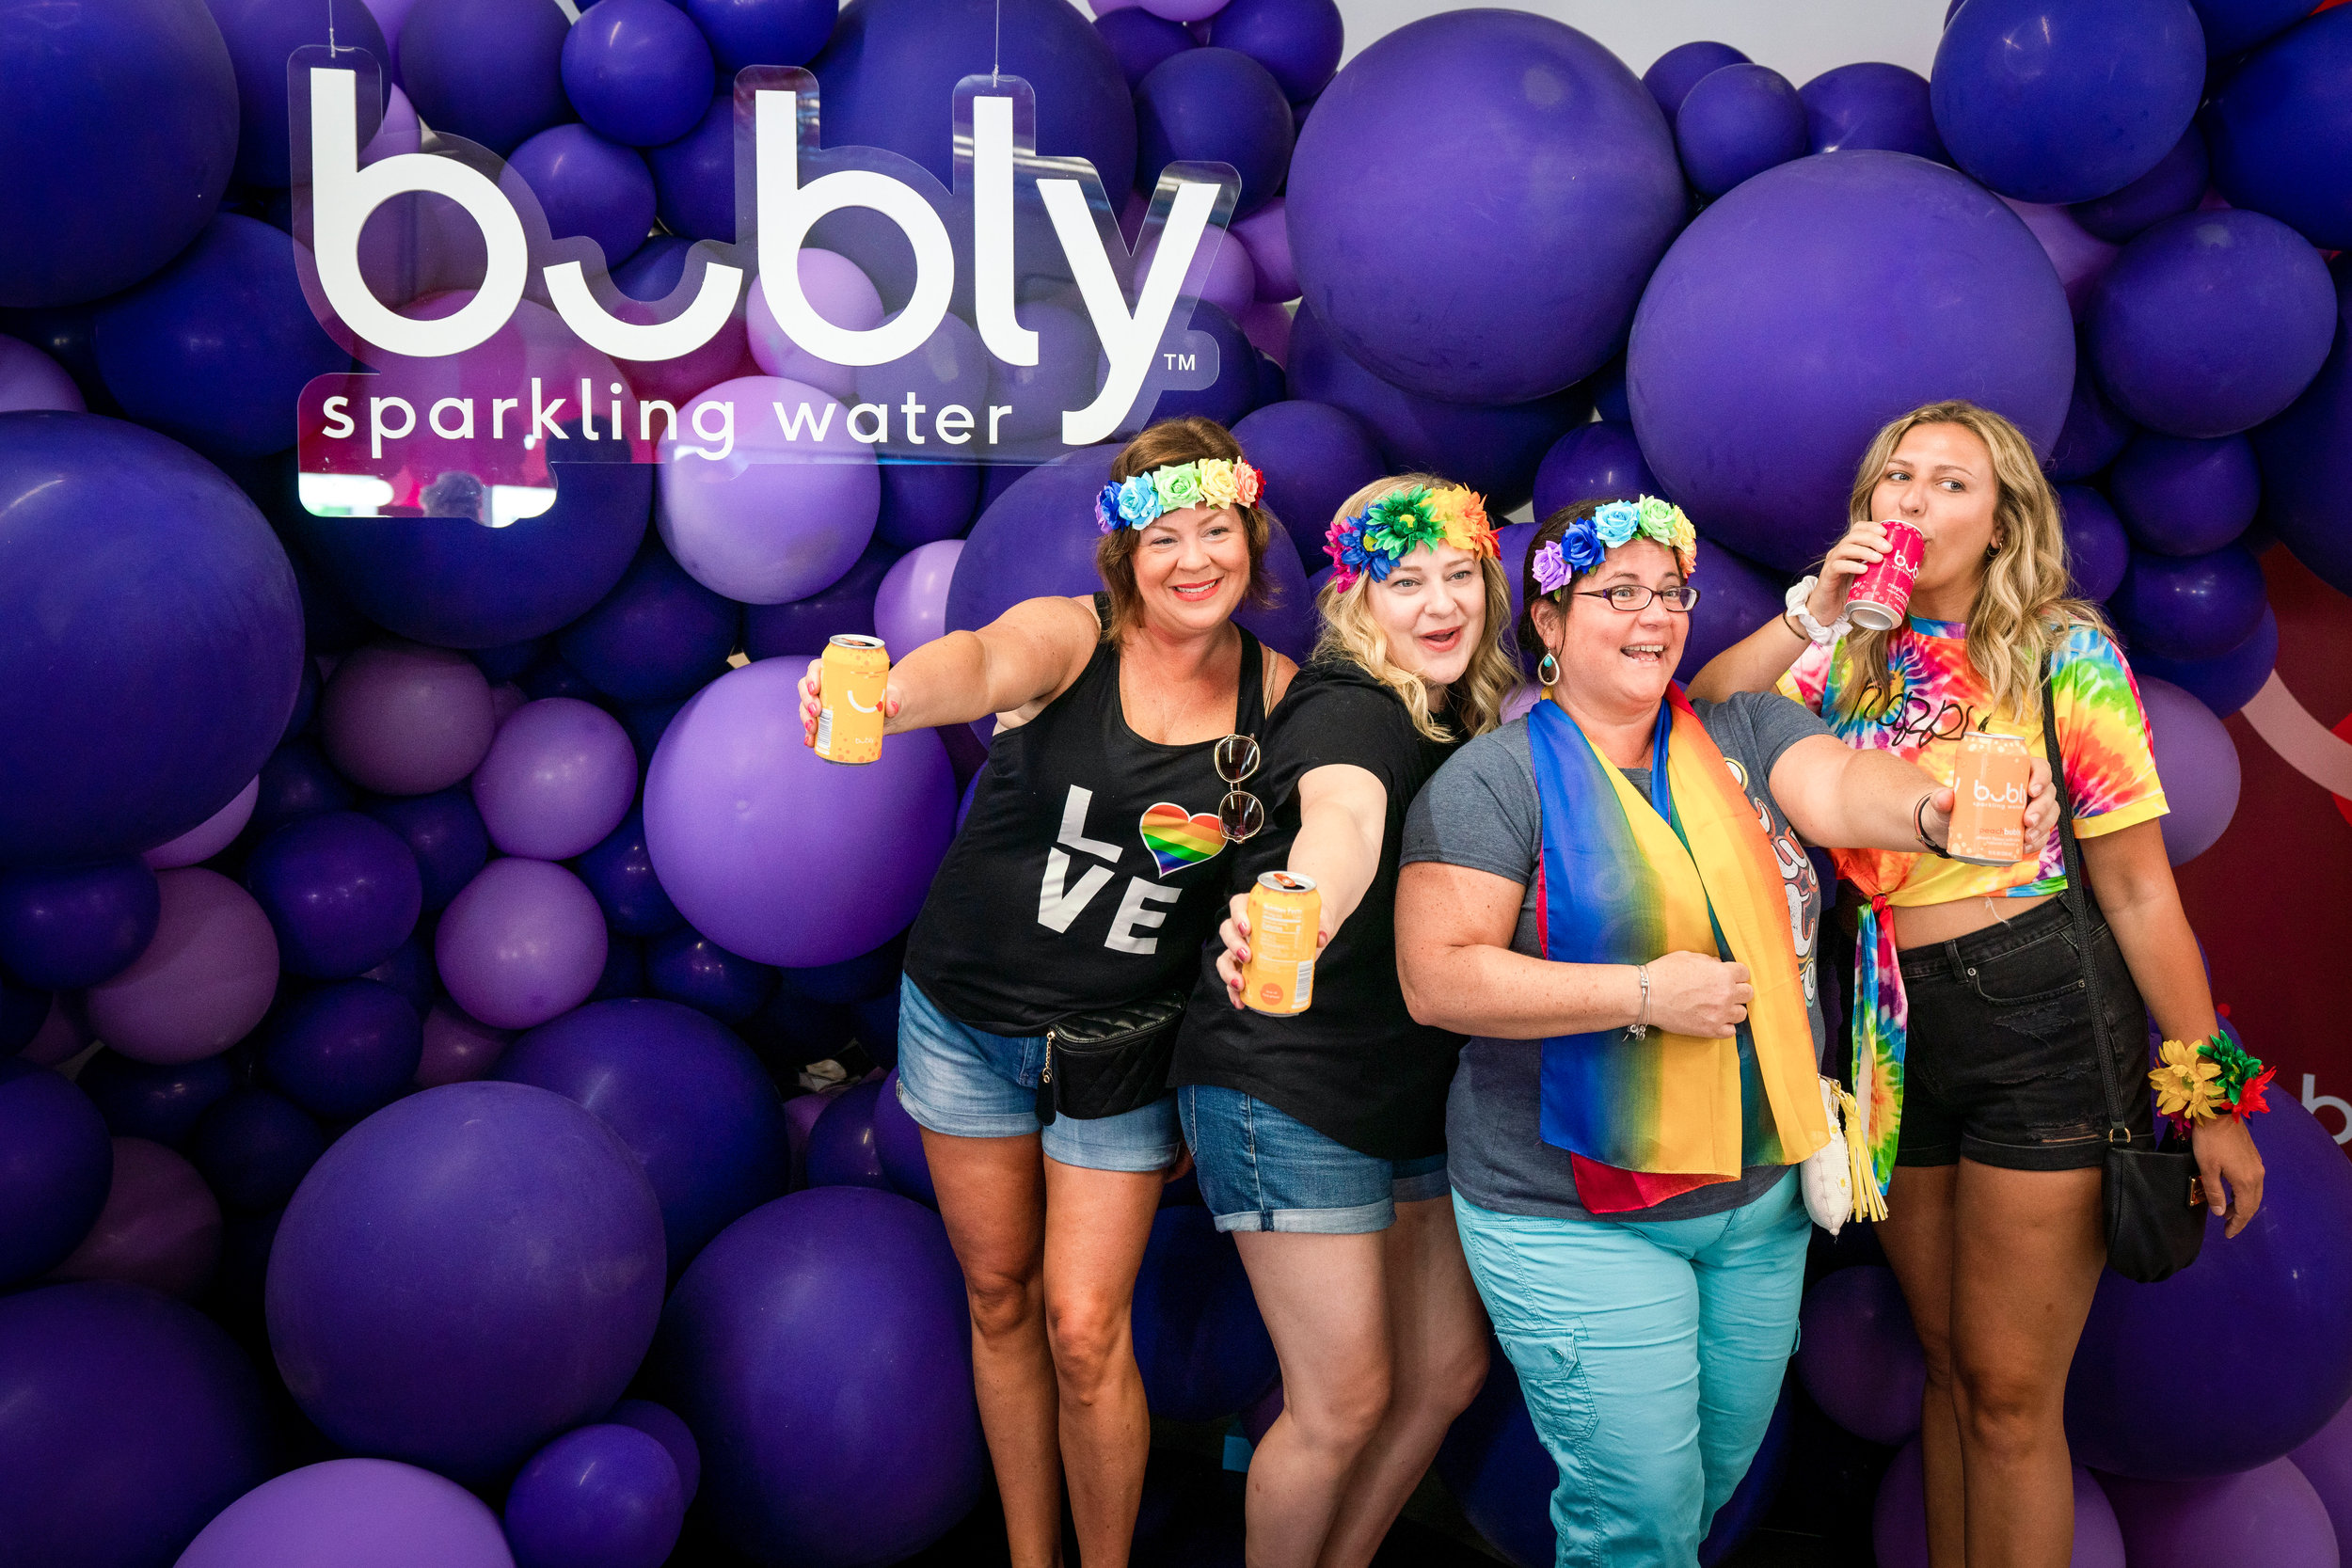 Bubly @ LA Pride  Experiential Marketing Event Photography Agency Brand Photography Brand Videography  Experiential Activations O Hello Media